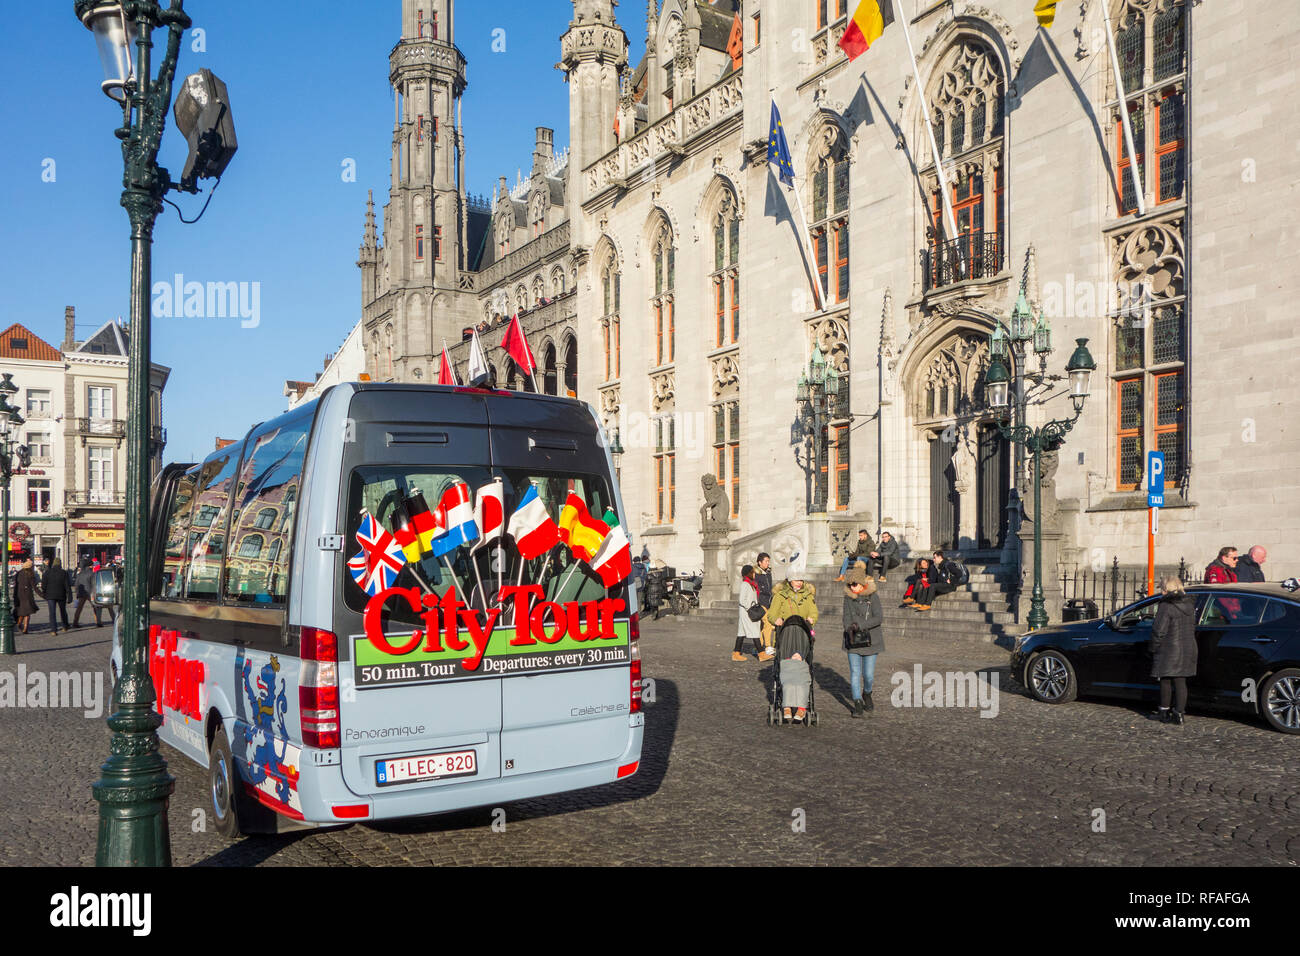 City Tour's minibus for guided sightseeing trip in front of the Provinciaal Hof / Province Court on the market place in Bruges, West Flanders, Belgium - Stock Image